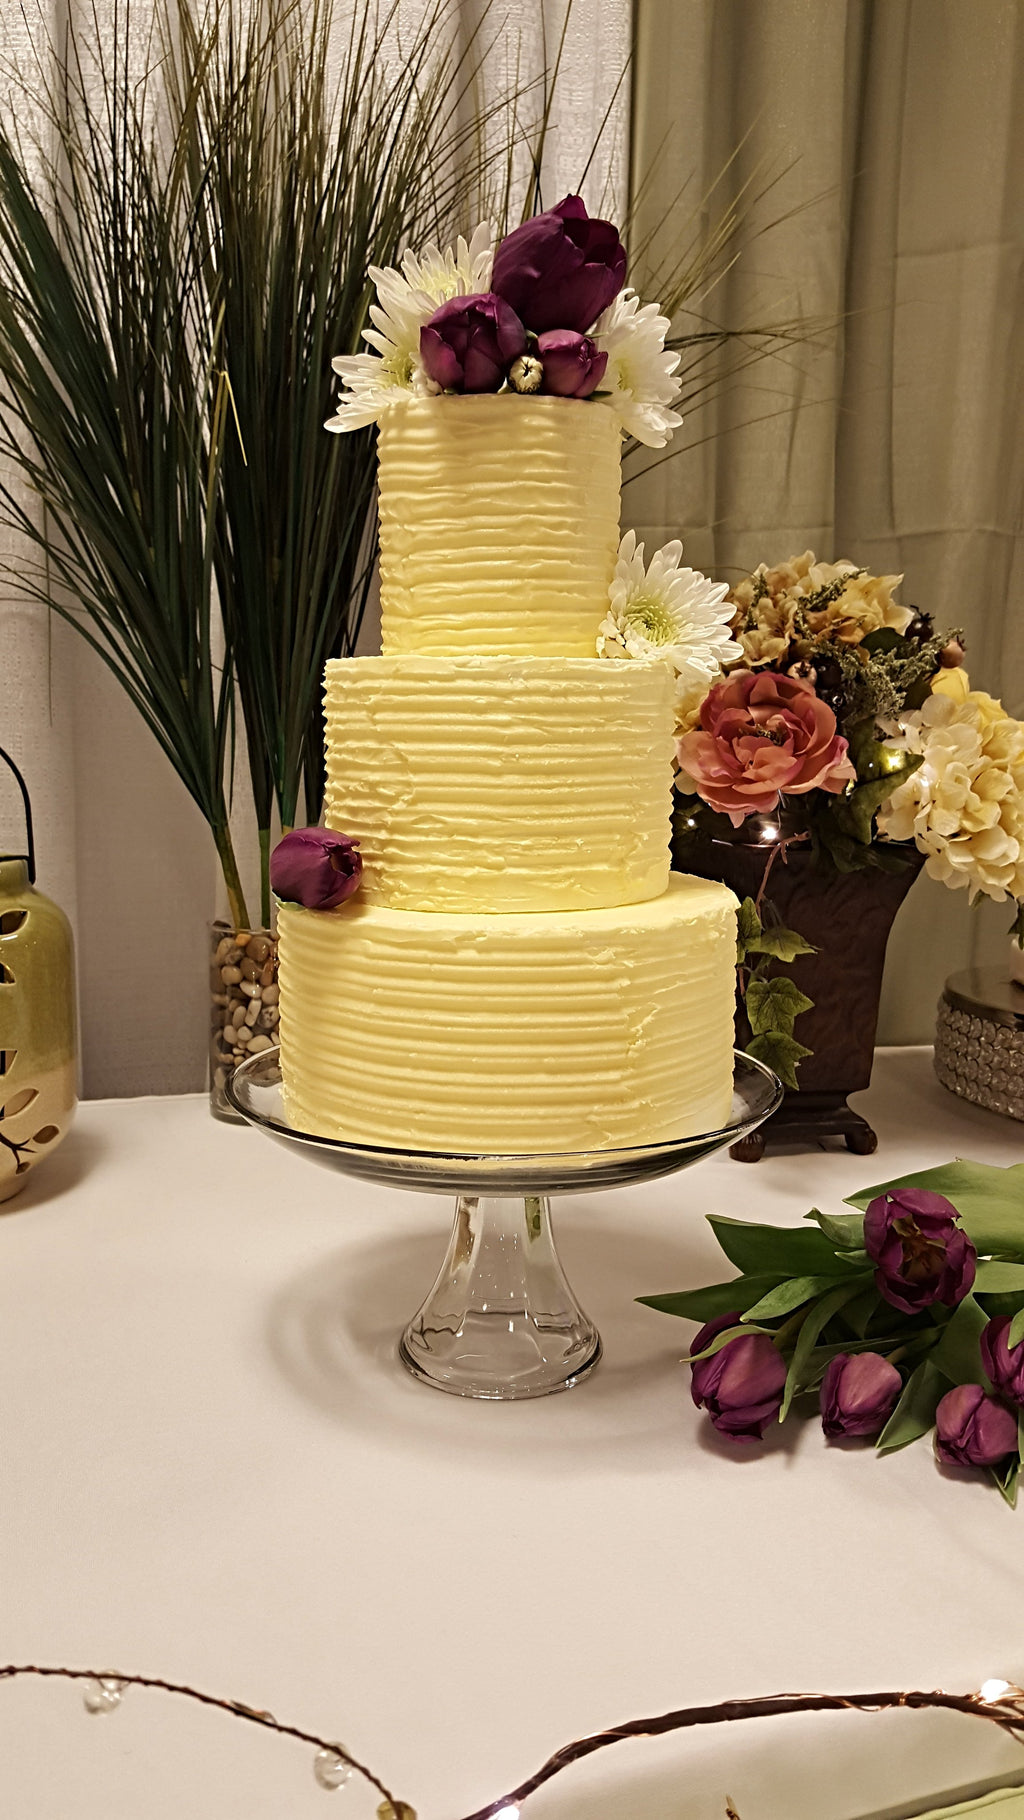 Luscious Desserts Icing wedding cake